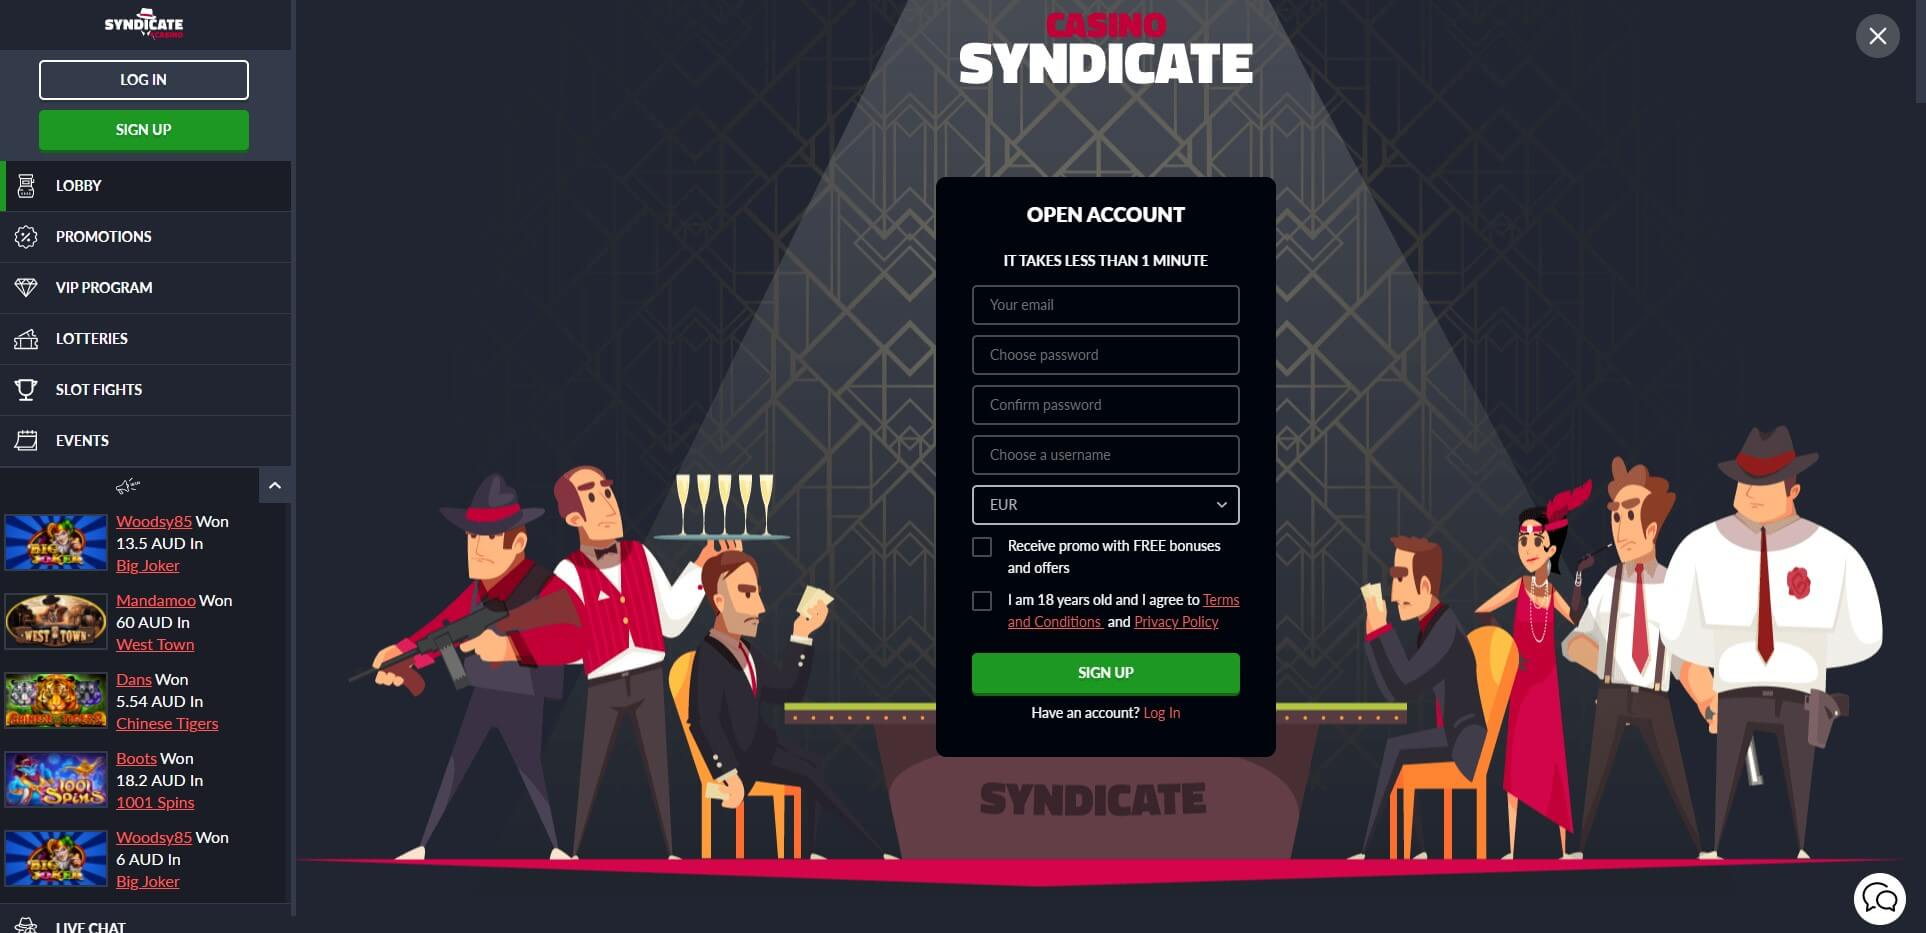 Sign Up at Syndicate Casino